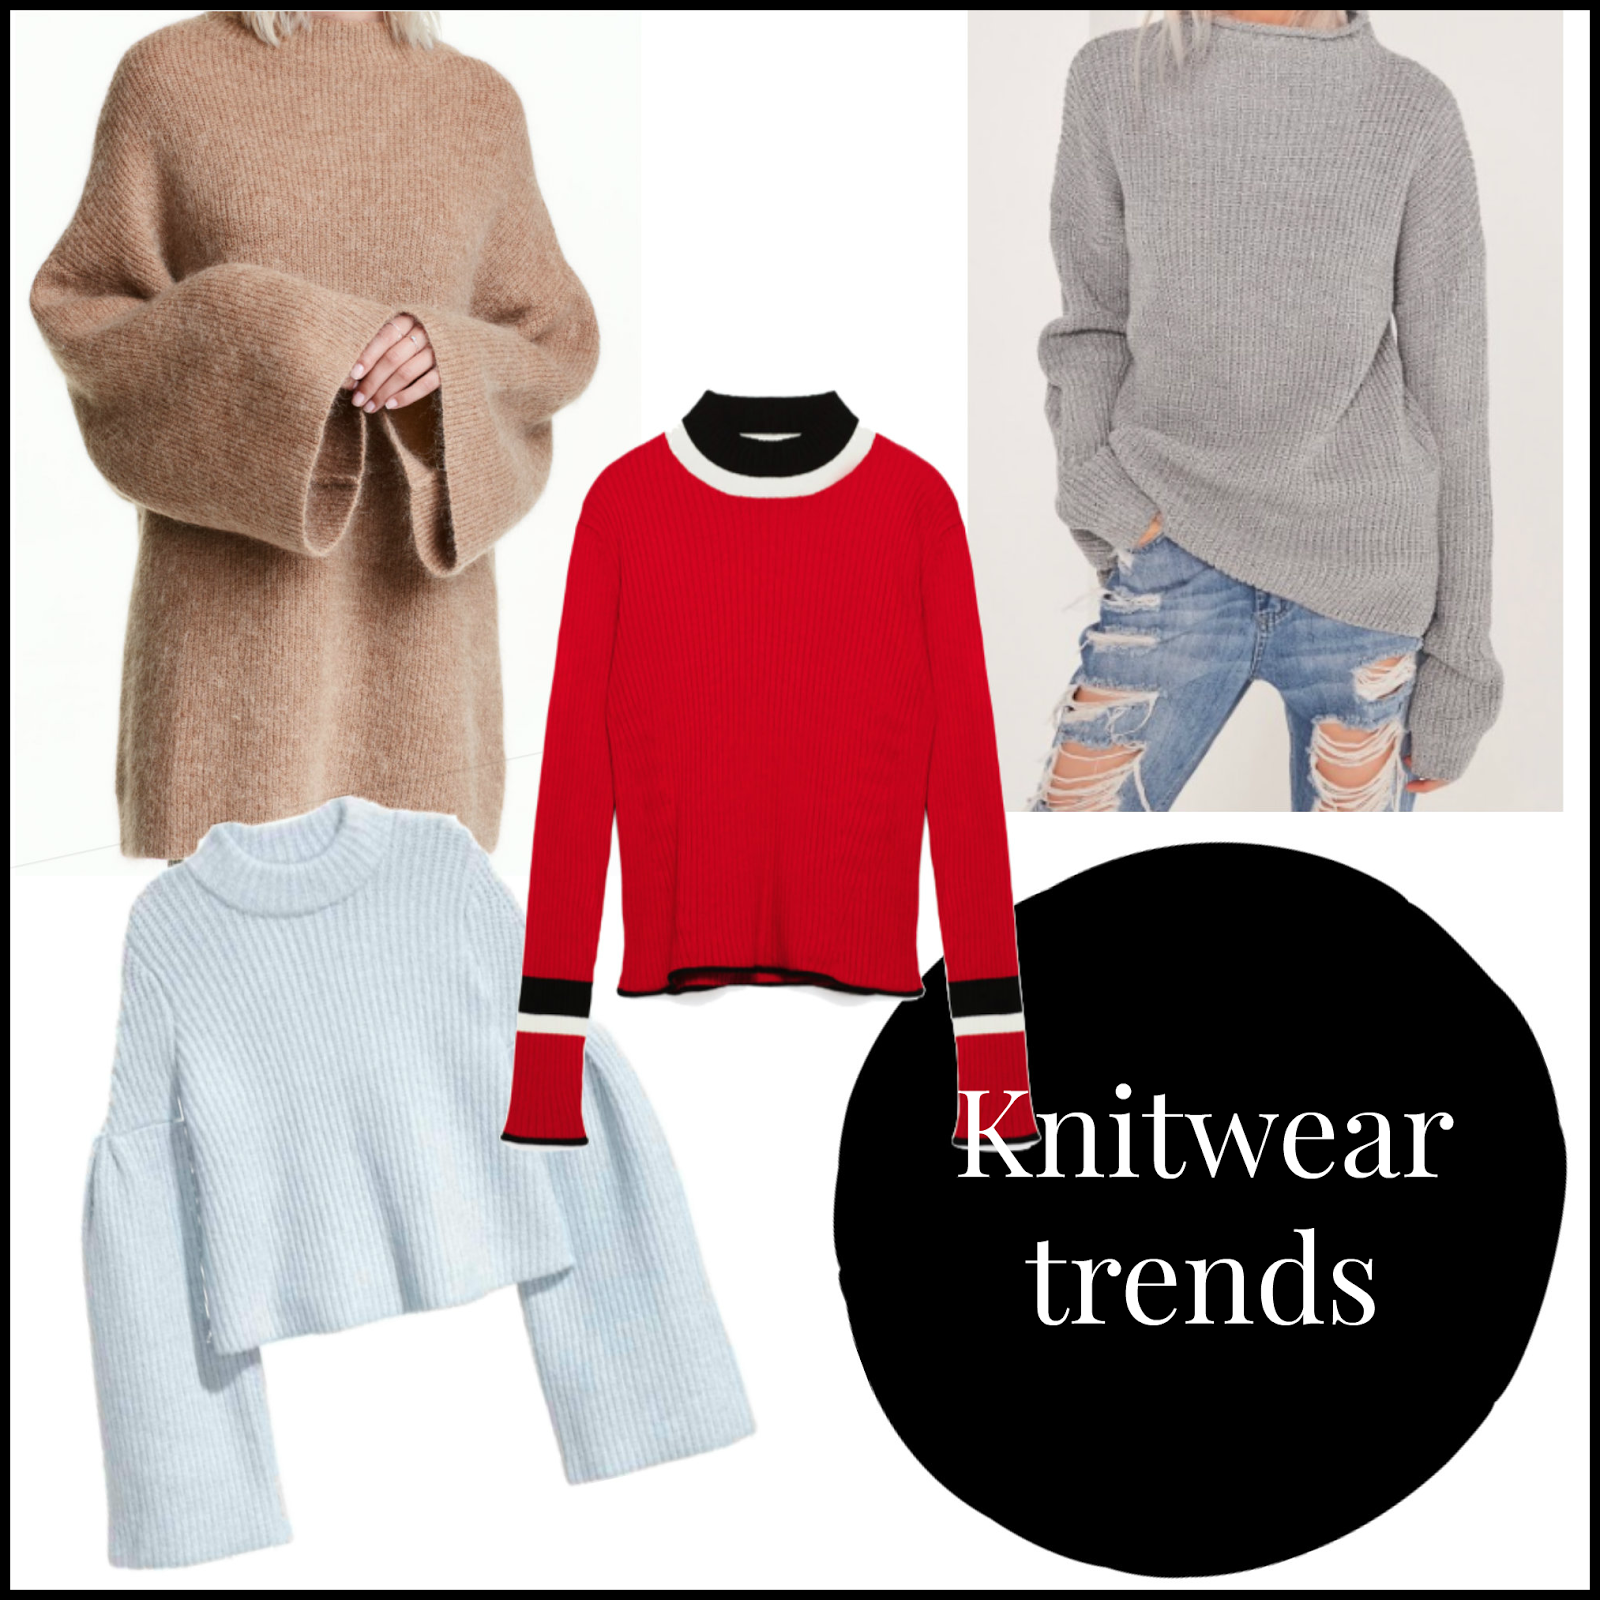 the best knitwear this winter season